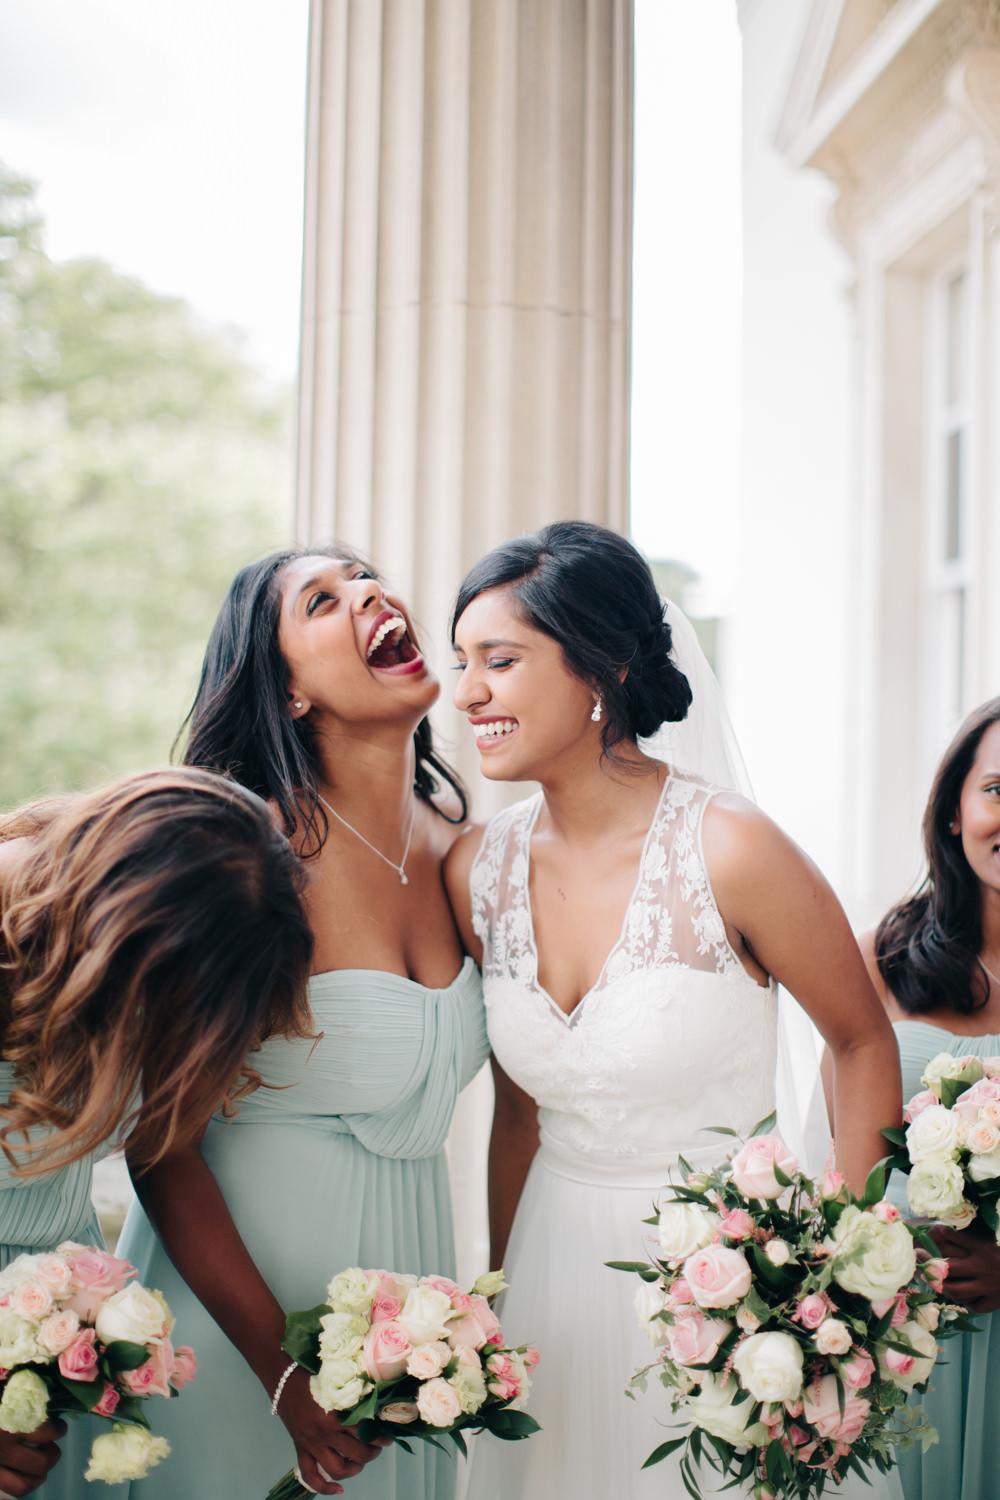 Elegant wedding at chiswick house london mj photography images by a hrefhttpmandjphotos images by mj photography sri lankan elegant wedding izmirmasajfo